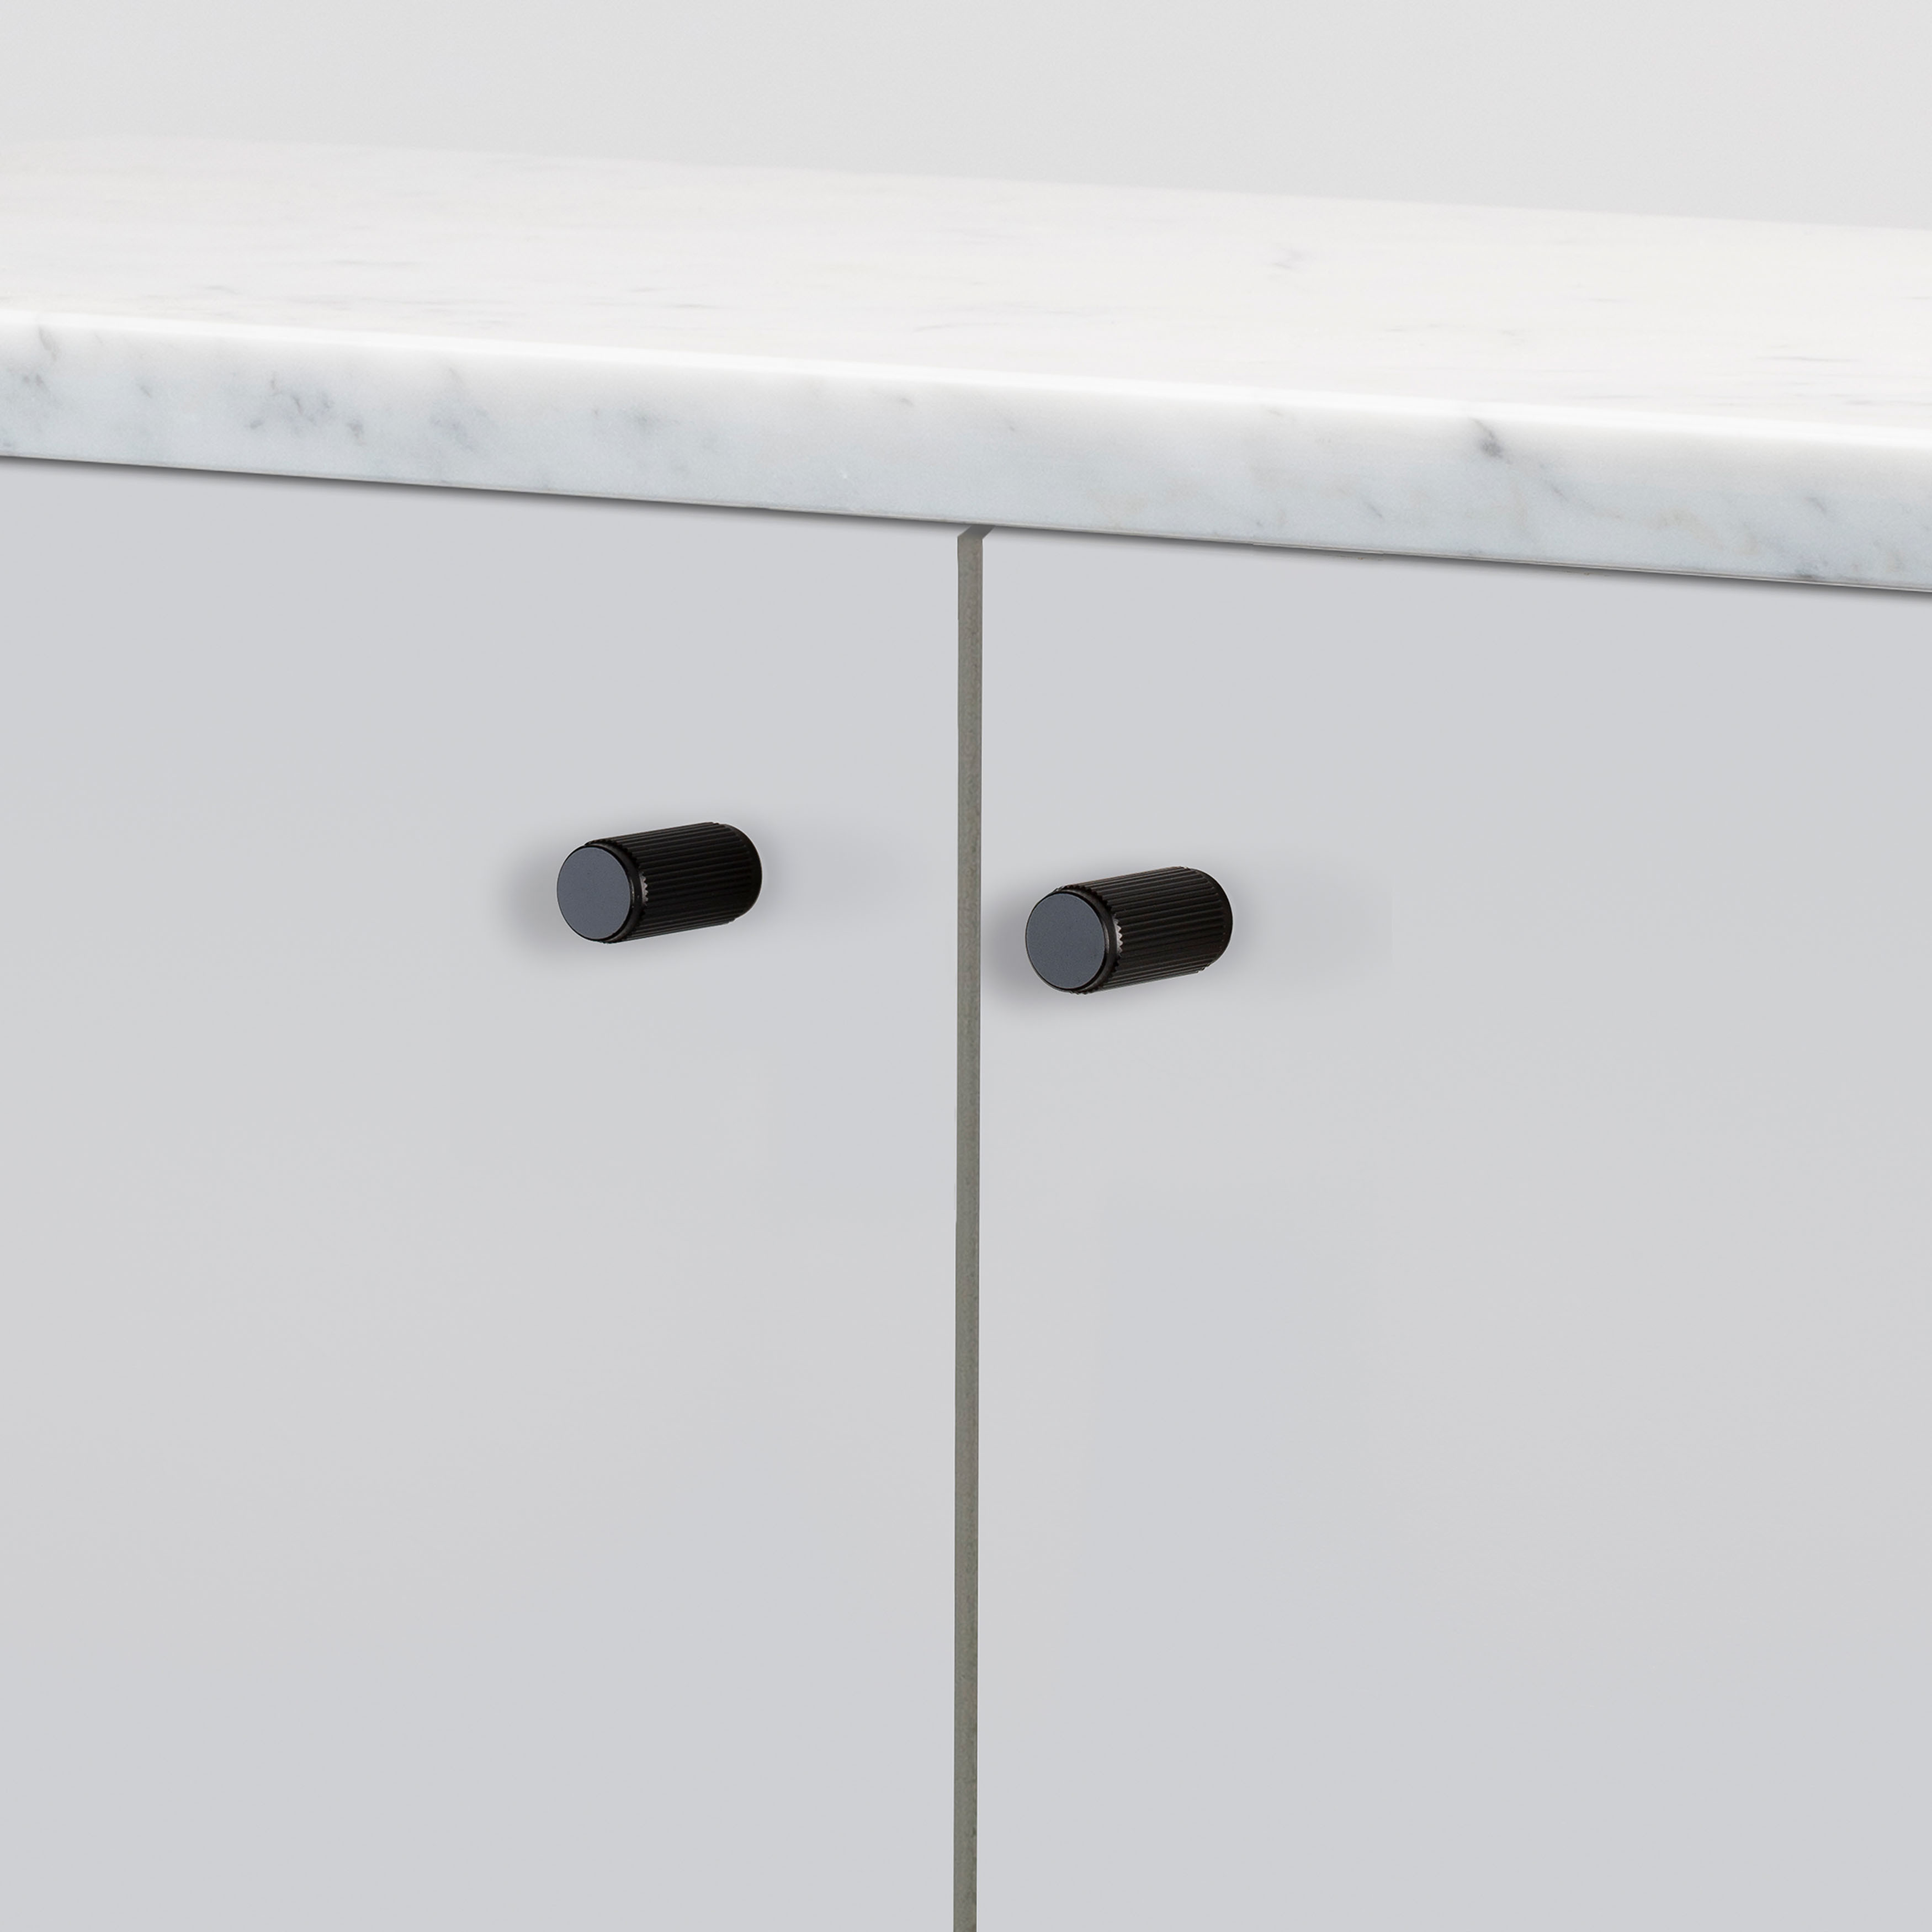 FURNITURE KNOB / LINEAR / BLACK